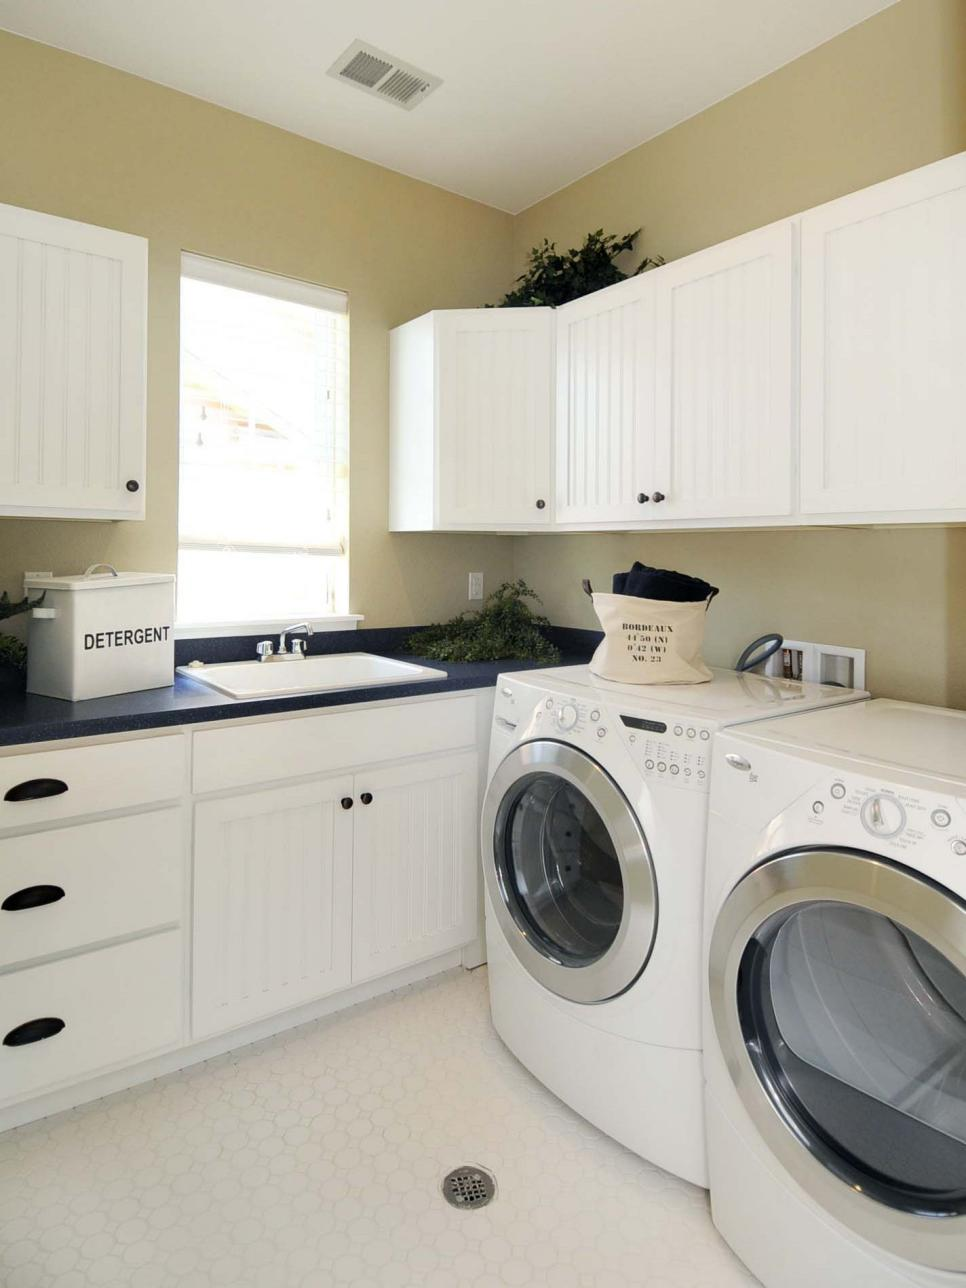 Beautiful and efficient laundry room designs hgtv for Suggested ideas for laundry room design